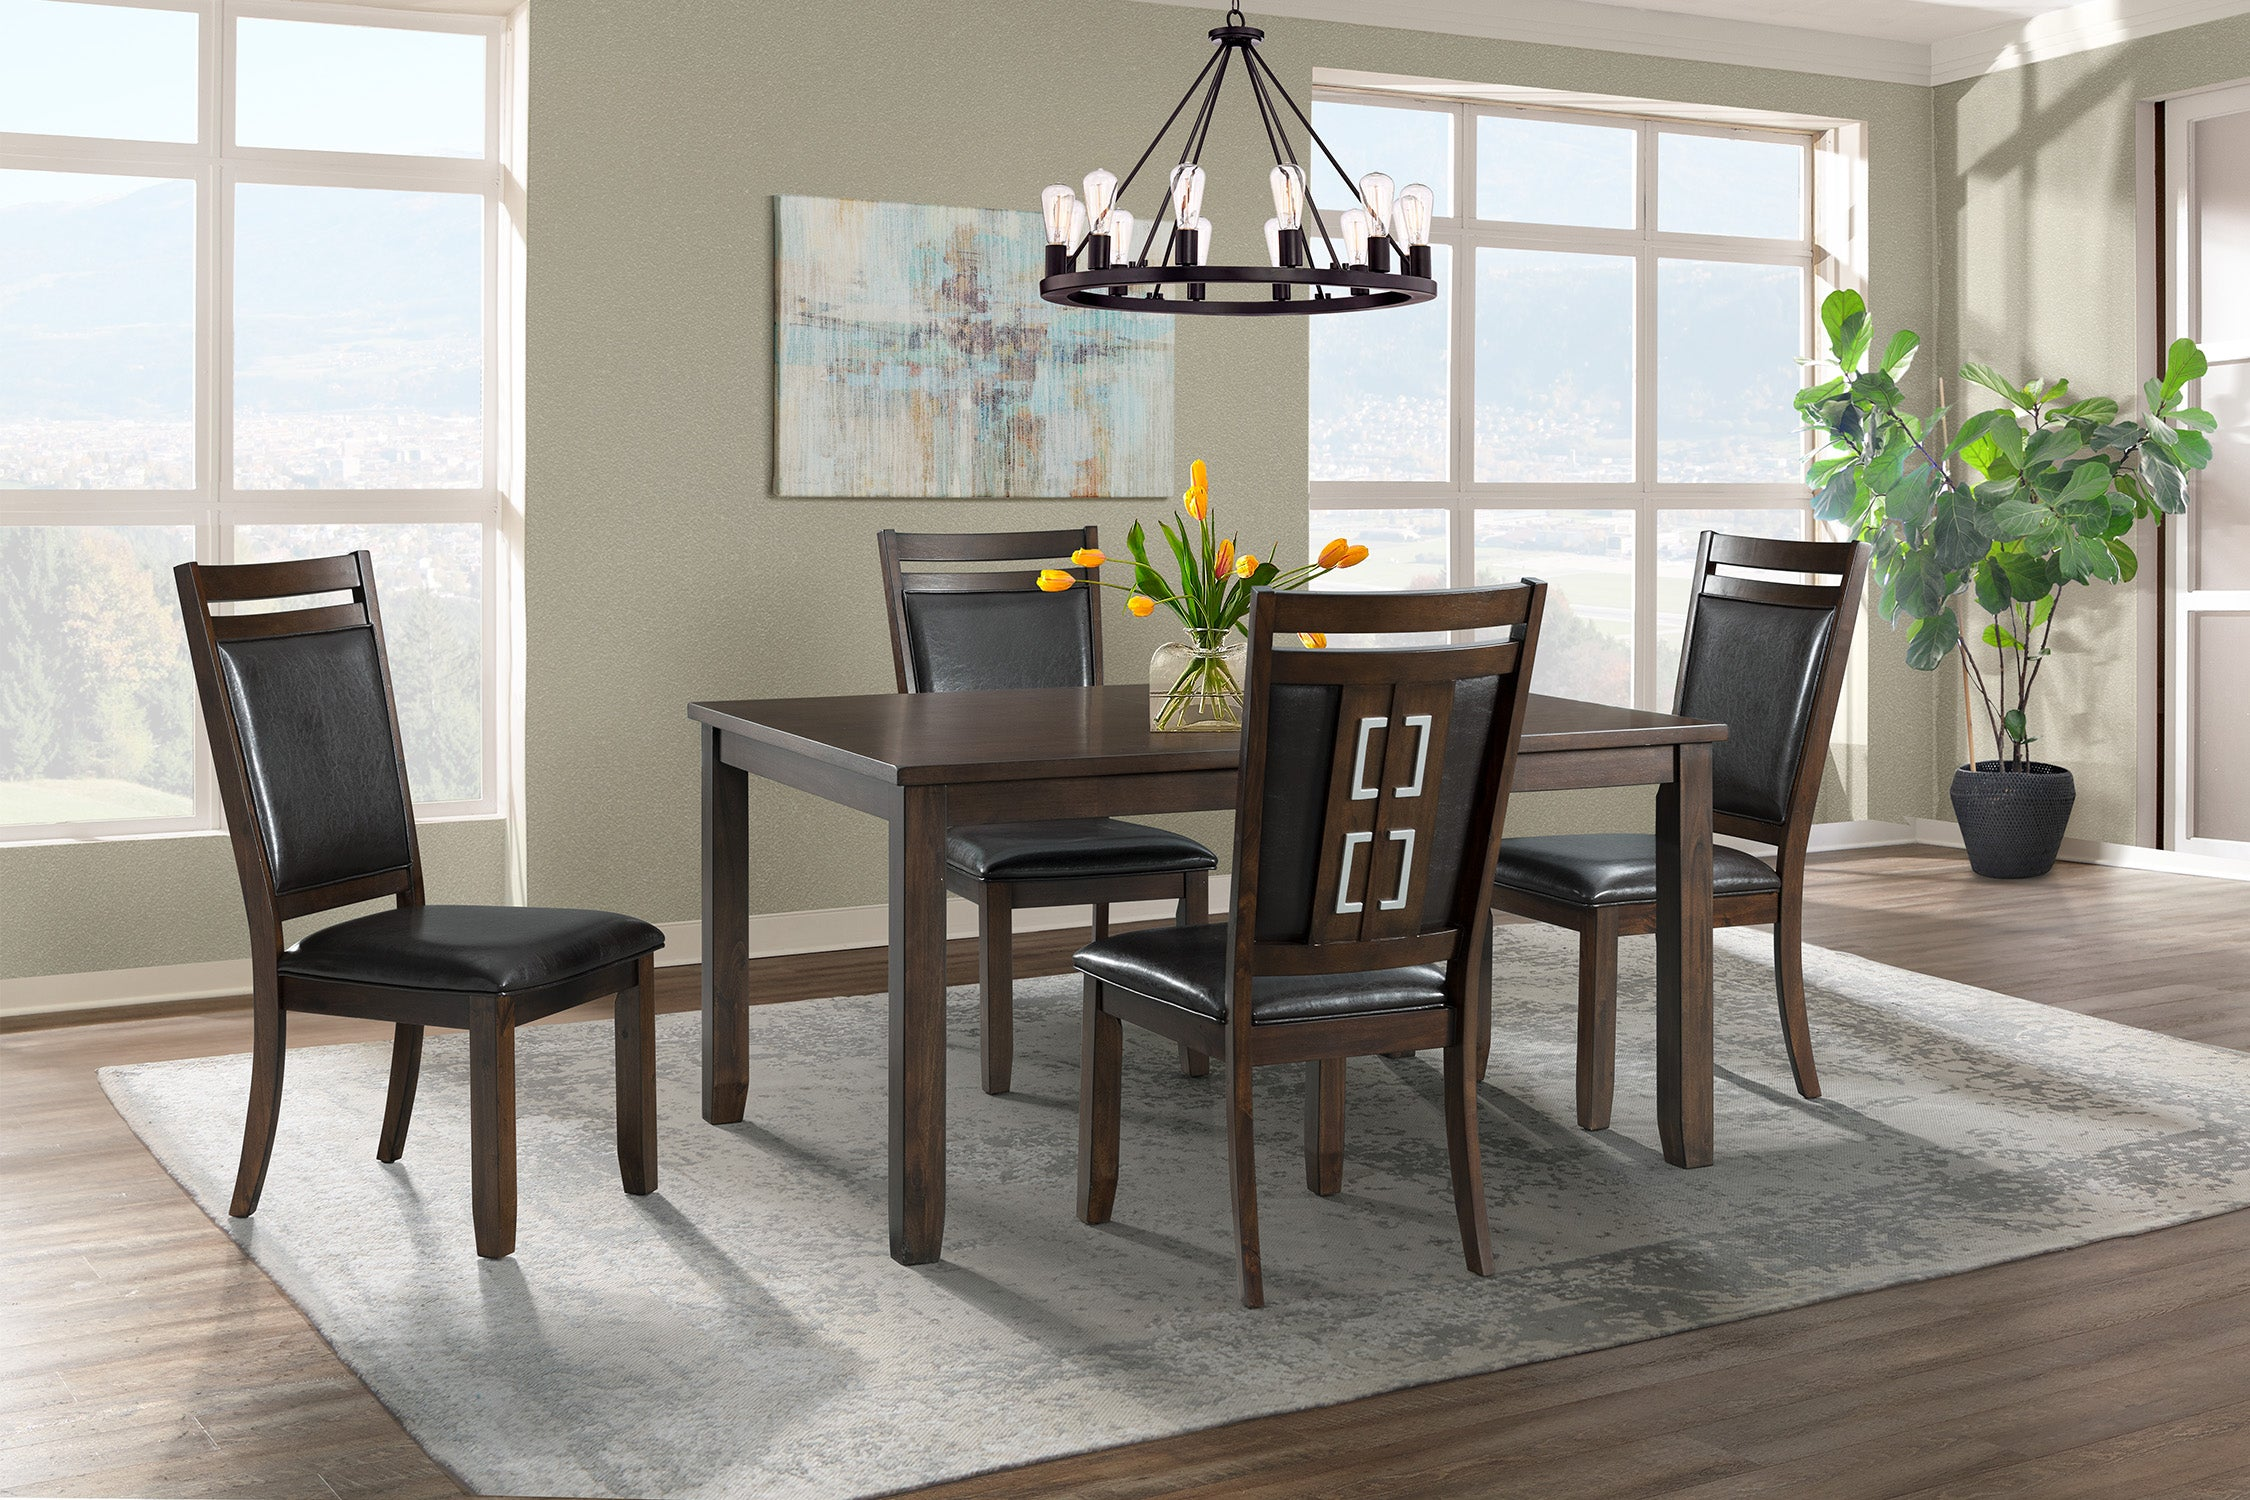 Rolex Espresso 5 Piece Dining Set With Upholstered Chair Kane S Furniture